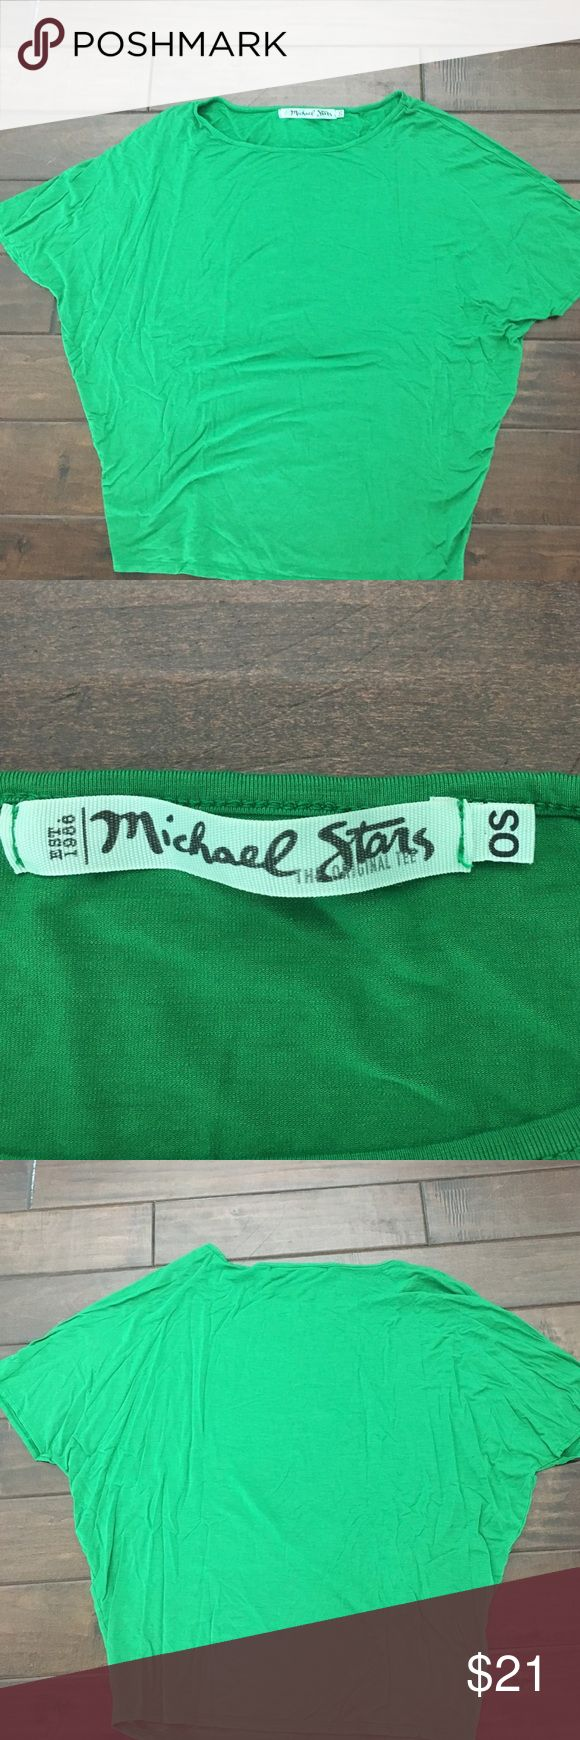 Michael Stars style #2268, green short sleeve top This top has a great fit and is in perfect condition. Pair it with jeans, cut offs, anything! Made of 95% rayon and 5% spandex. Get it now! One size Michael Stars Tops Tees - Short Sleeve